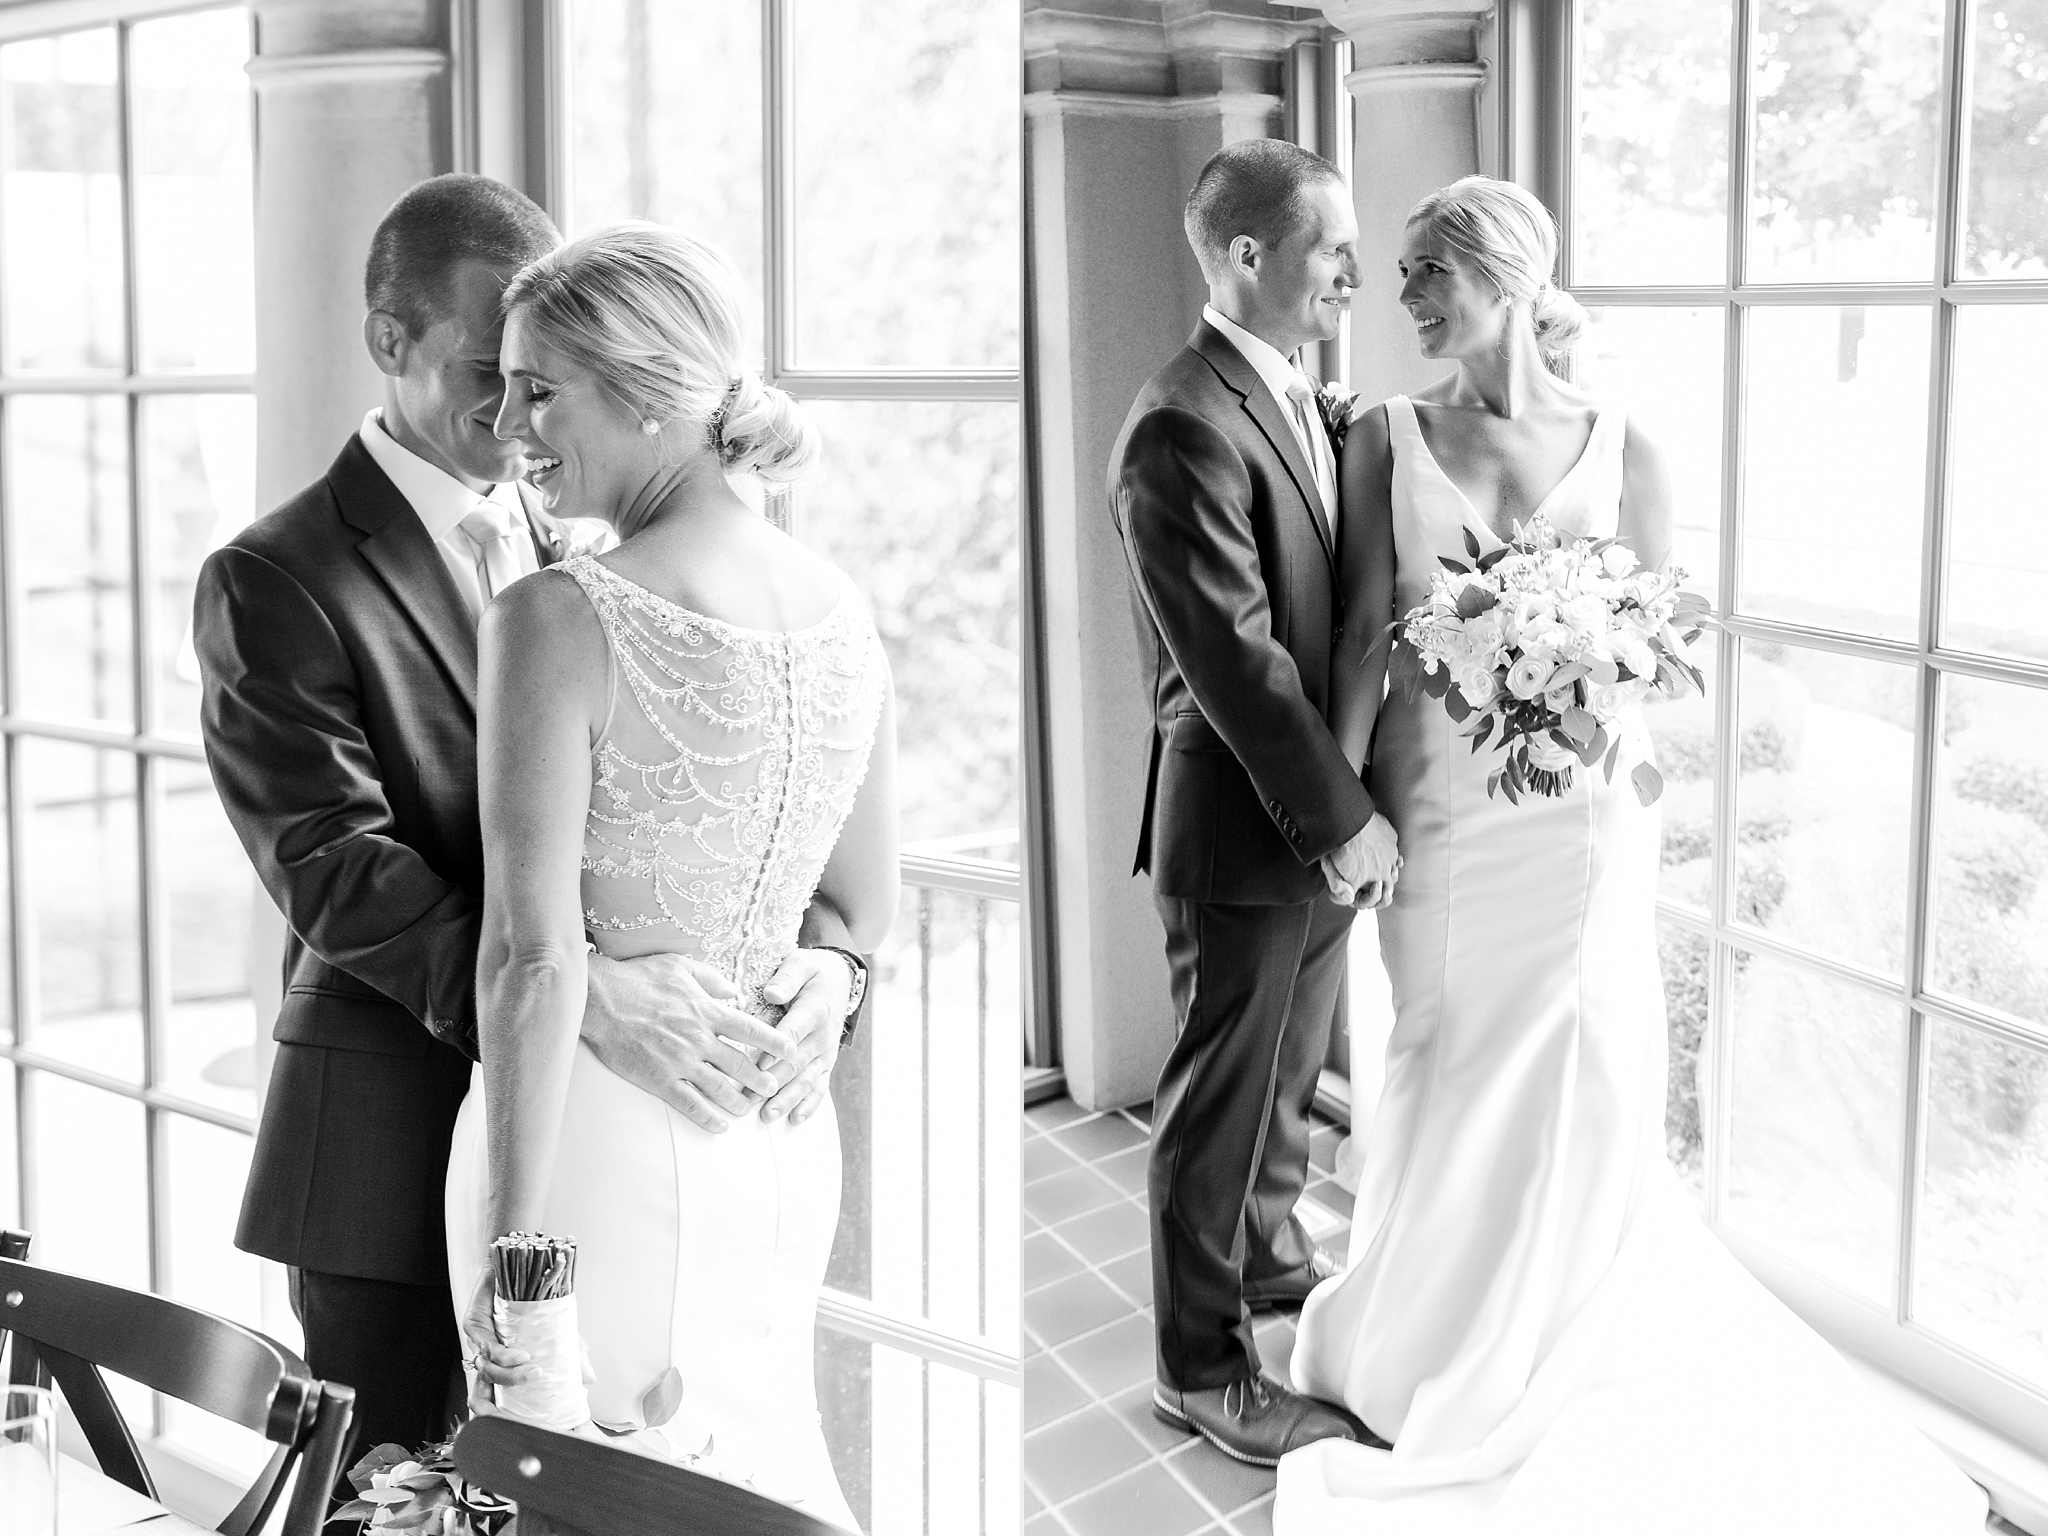 casually-chic-modern-wedding-photos-at-the-chapman-house-in-rochester-michigan-by-courtney-carolyn-photography_0025.jpg